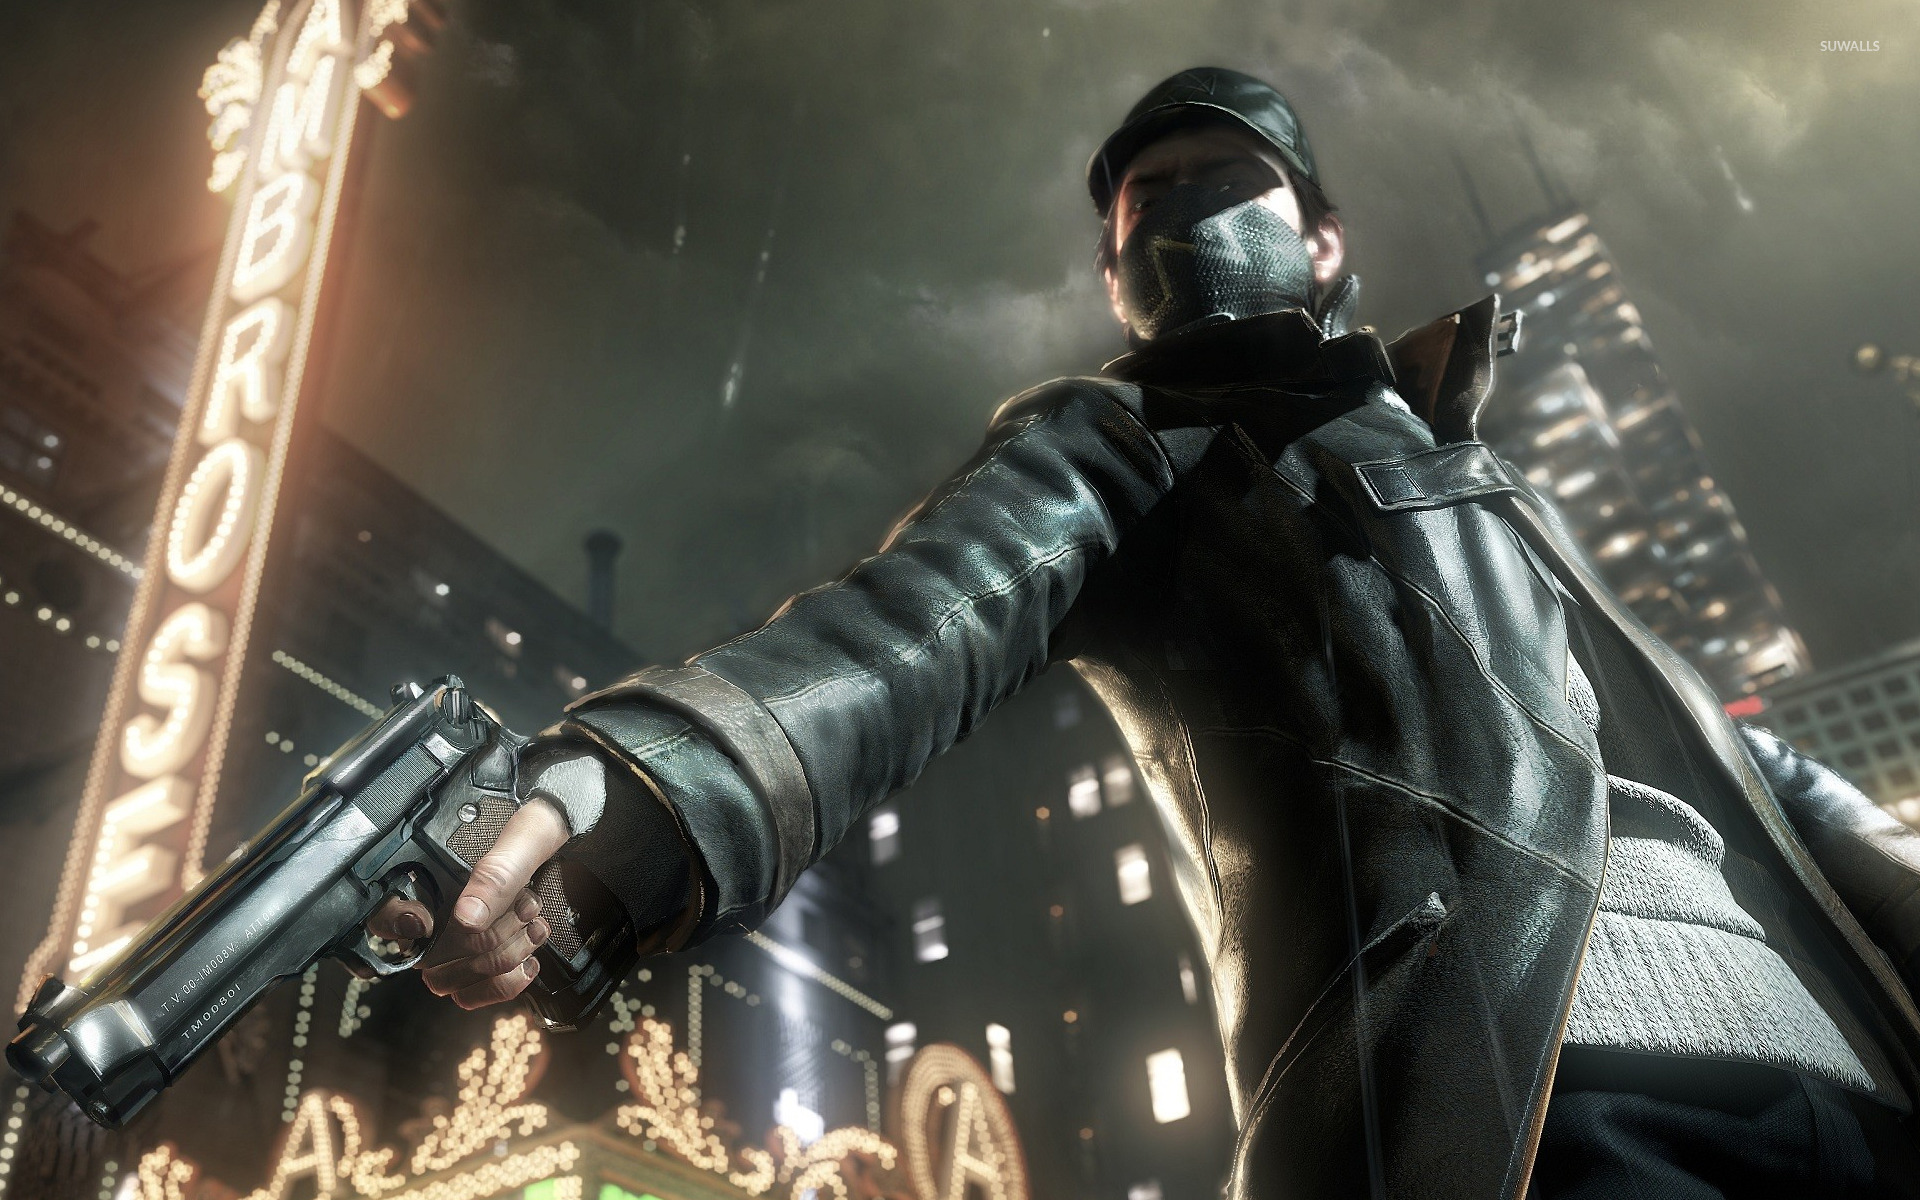 Watch Dogs 2 Wallpaper Game Wallpapers 16612